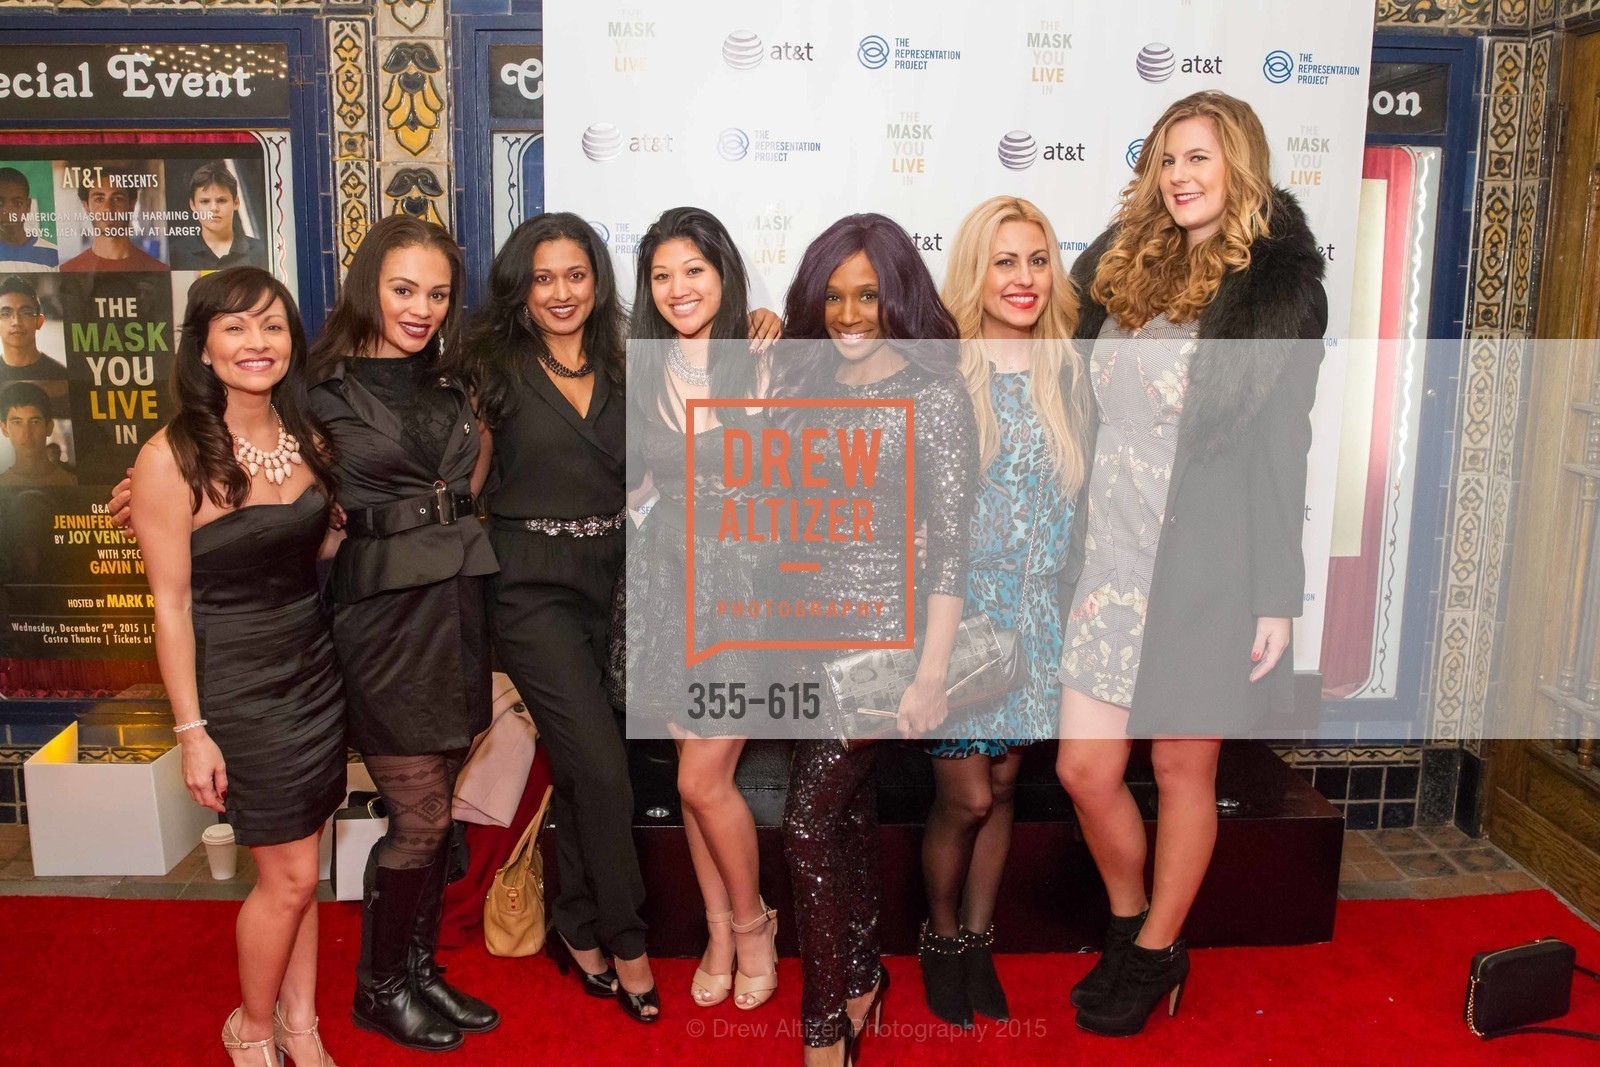 Stacy Lin, Jessica Robinson, Shilpa Vichare, Pernela Sommerville, Jen Hernandez, Jennifer Siebel Newsom's Castro Screening The Mask You Live In, Castro Theatre. 429 Castro Street, December 2nd, 2015,Drew Altizer, Drew Altizer Photography, full-service agency, private events, San Francisco photographer, photographer california